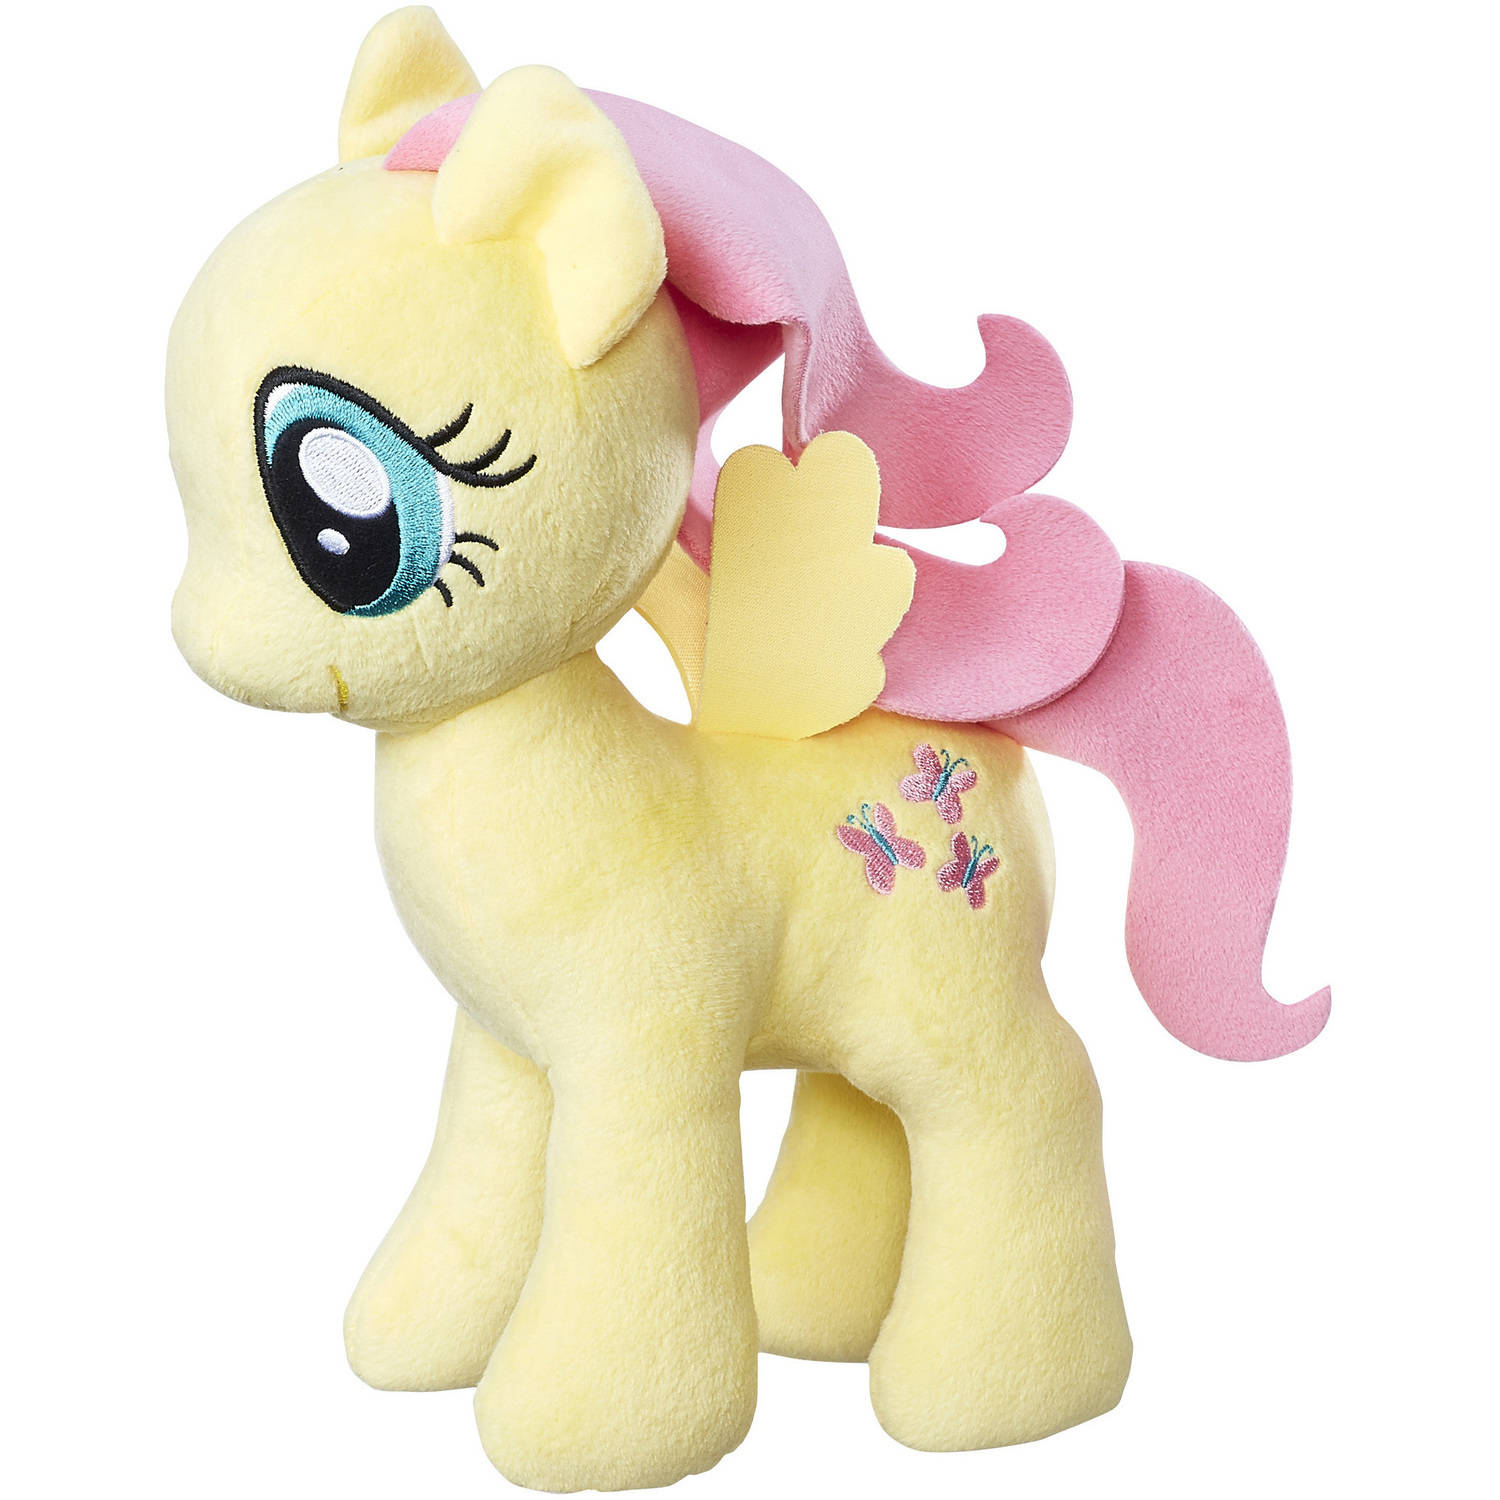 "My Little Pony Friendship is Magic Fluttershy 10"" Soft Plush"